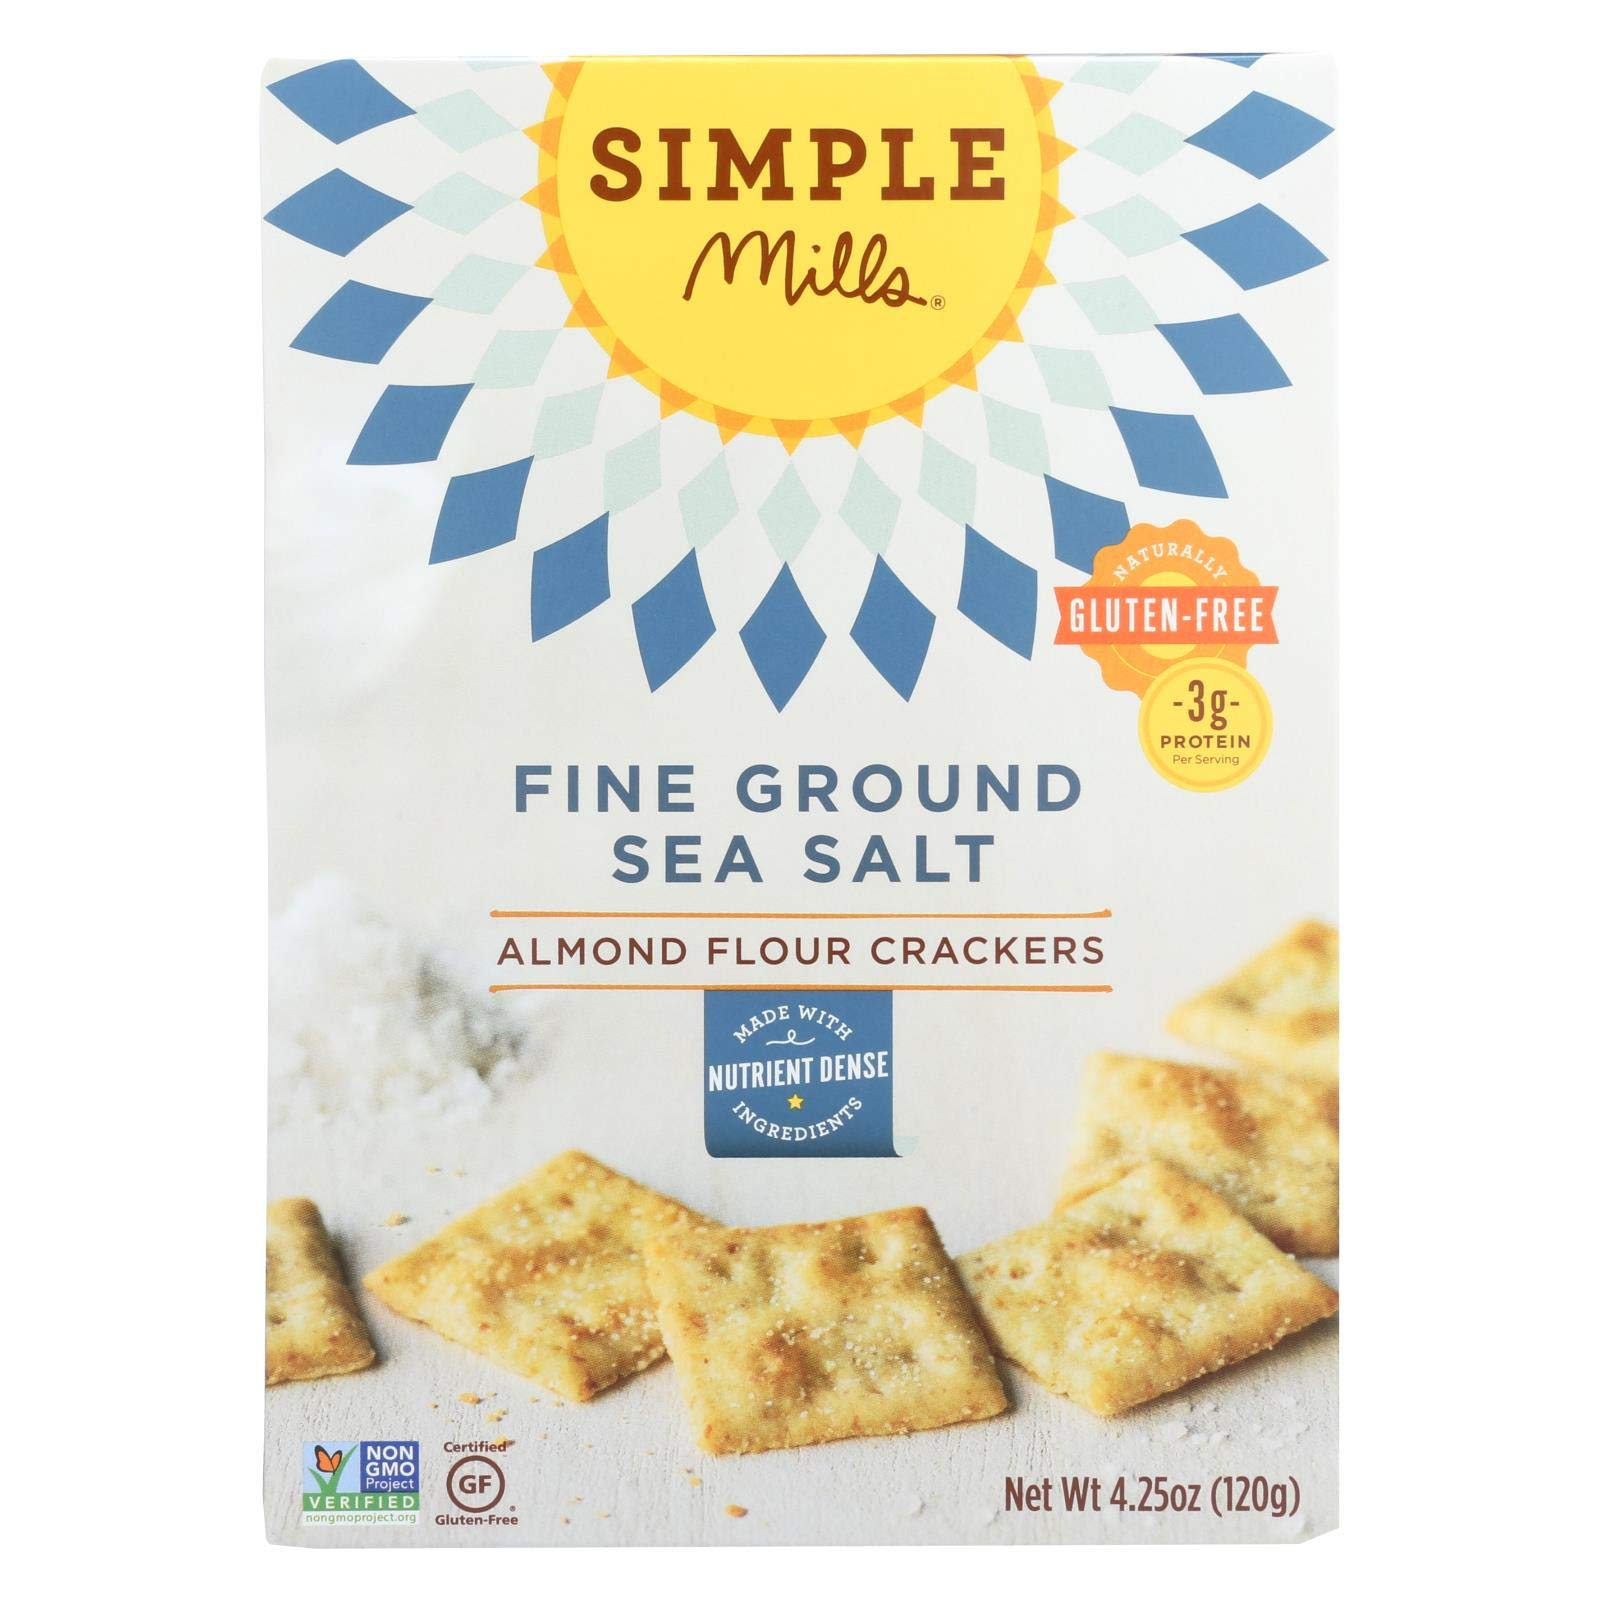 Simple Mills Fine Ground Sea Salt Almond Flour Crackers - Case of 6 - 4.25 oz. by Simple Mills (Image #1)